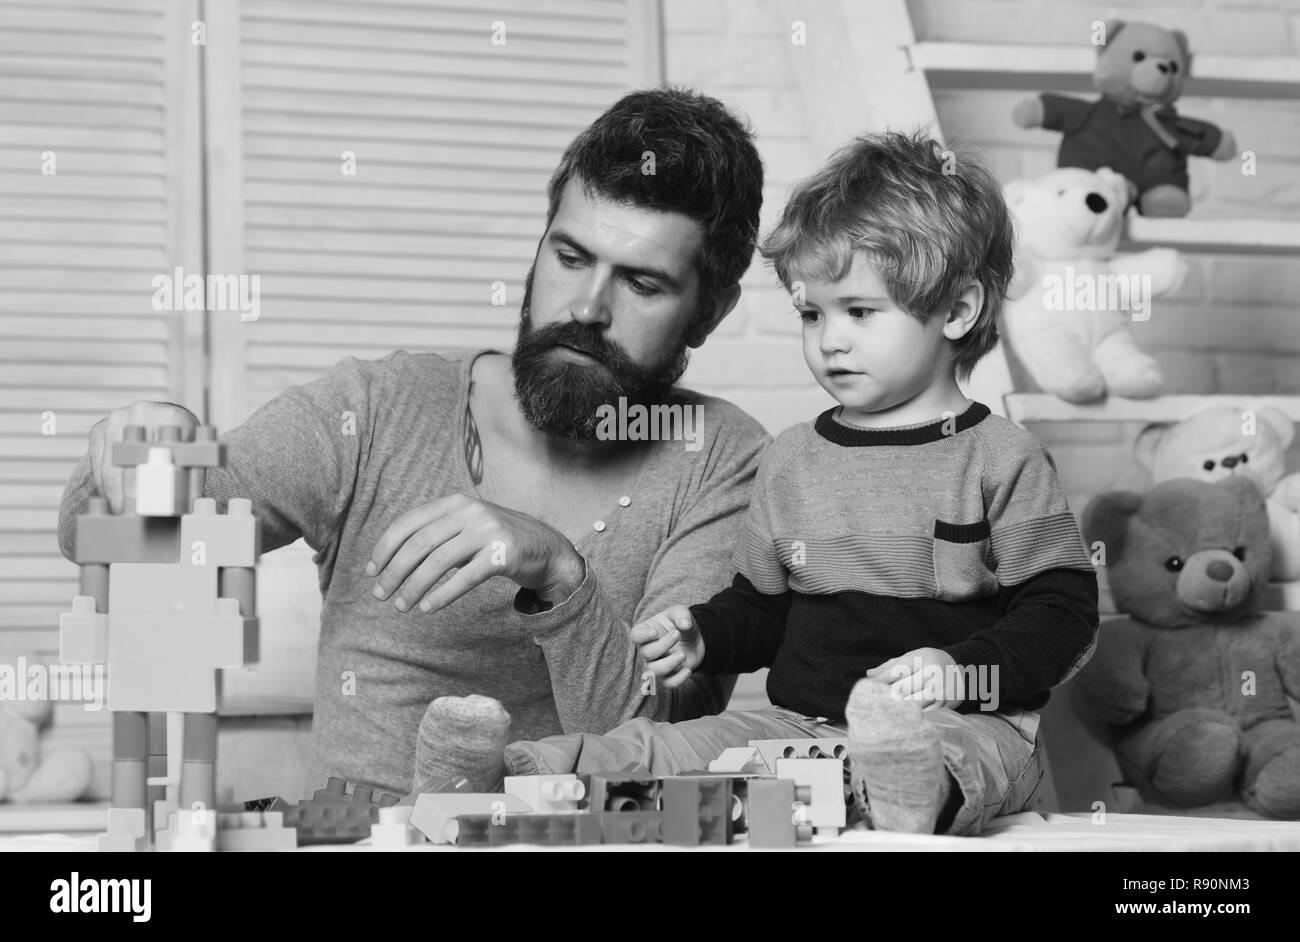 Boy and bearded man play together on wooden background. Father and son with busy faces create colorful constructions with toy bricks. Family and childhood concept. Dad and kid build of plastic blocks - Stock Image